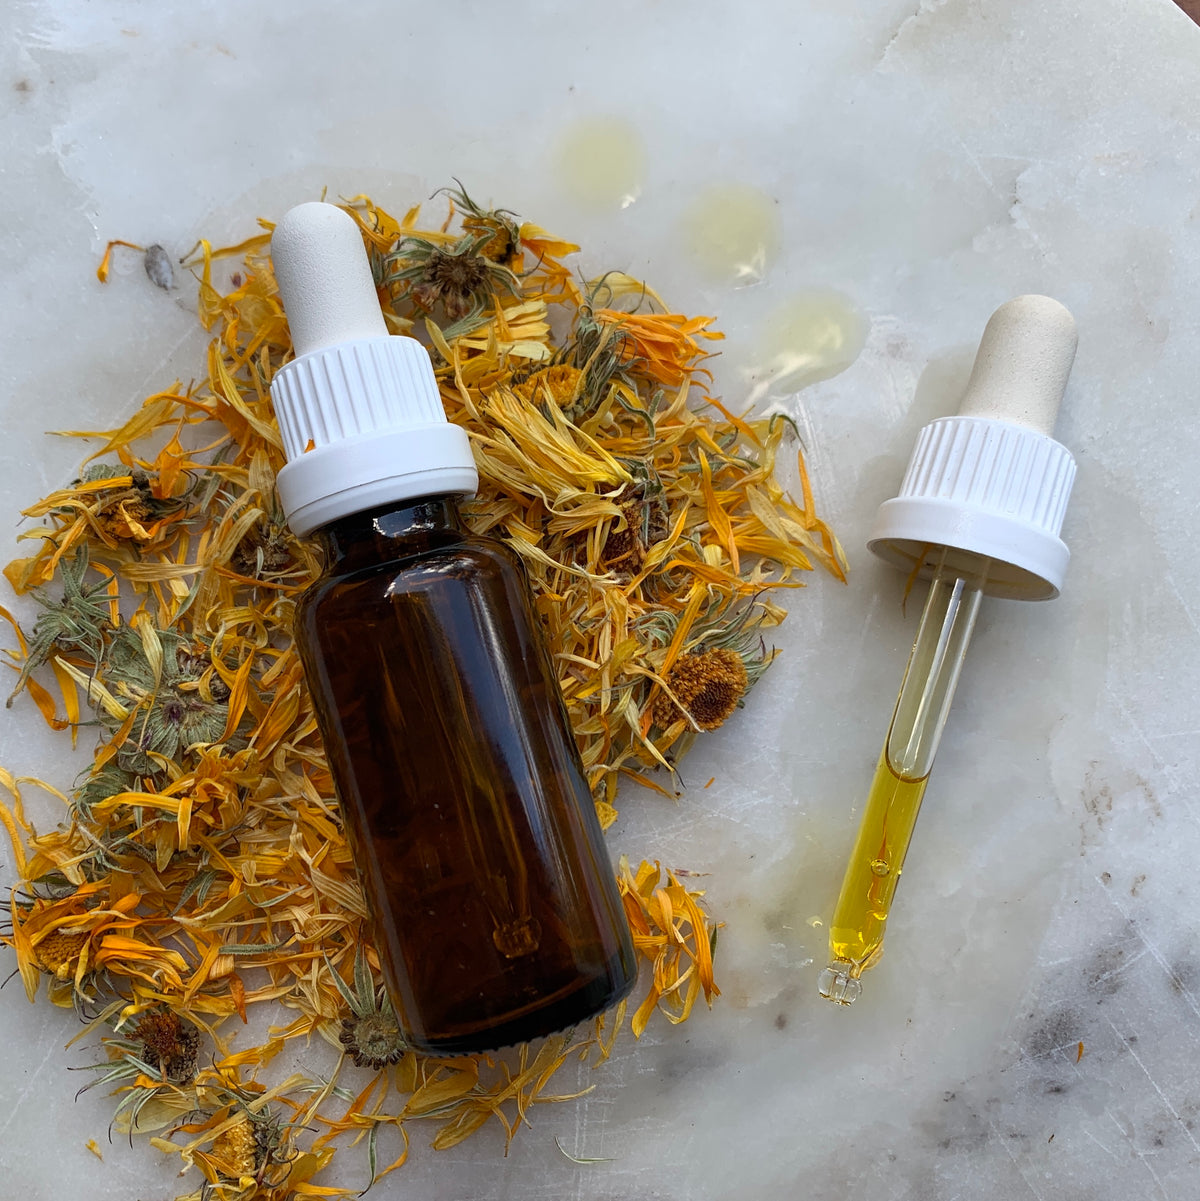 Is there such a thing as pure calendula oil?